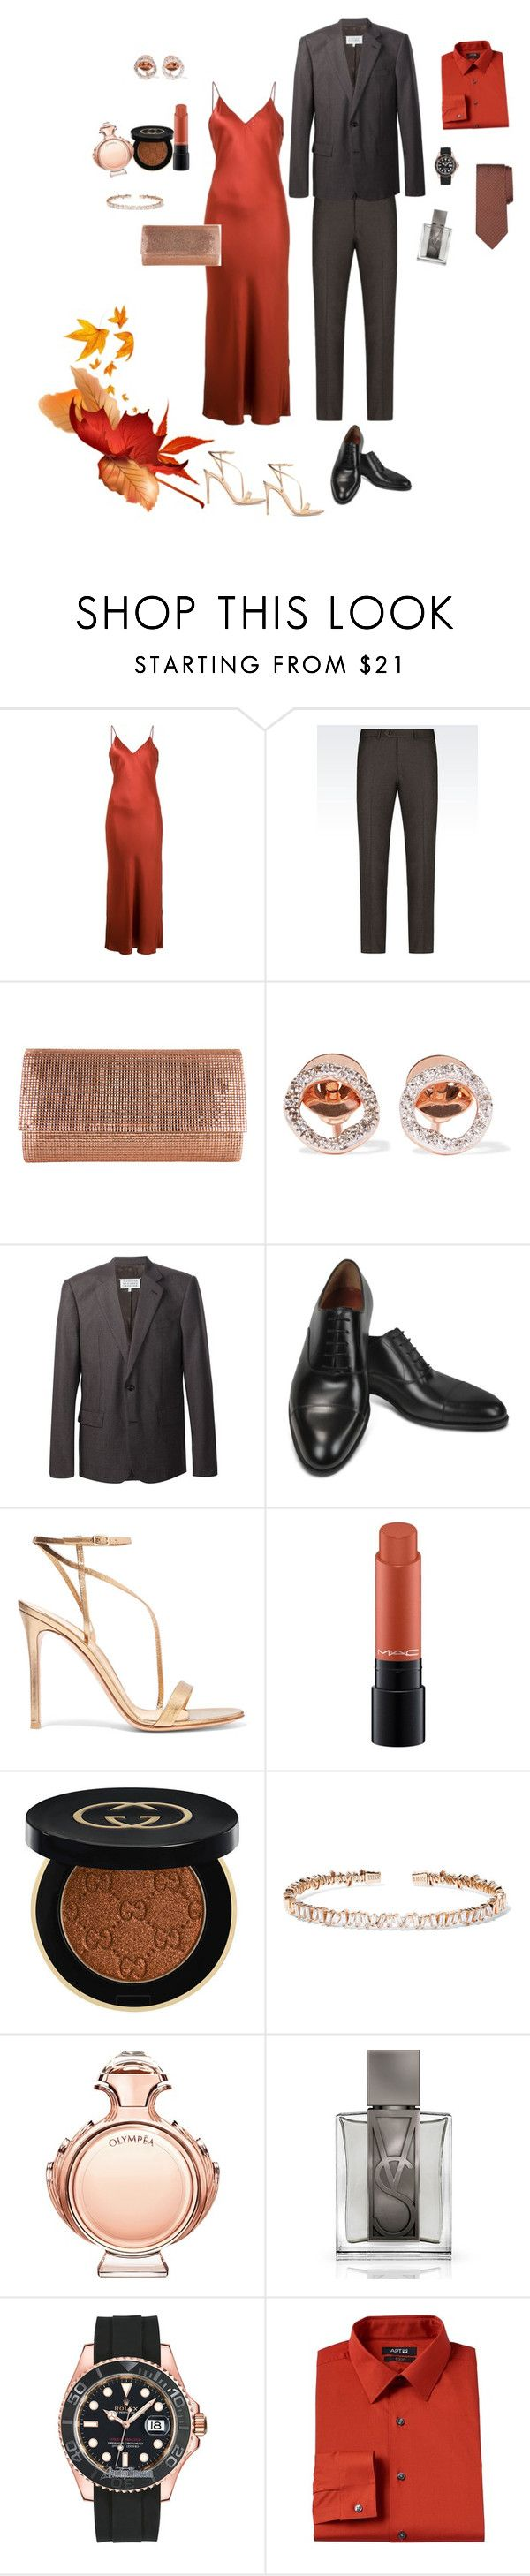 """Fall bridesmaid & bestman"" by ms-hinds ❤ liked on Polyvore featuring Protagonist, Armani Collezioni, Judith Leiber, Monica Vinader, Maison Margiela, Fratelli Rossetti, Gianvito Rossi, MAC Cosmetics, Gucci and Suzanne Kalan"